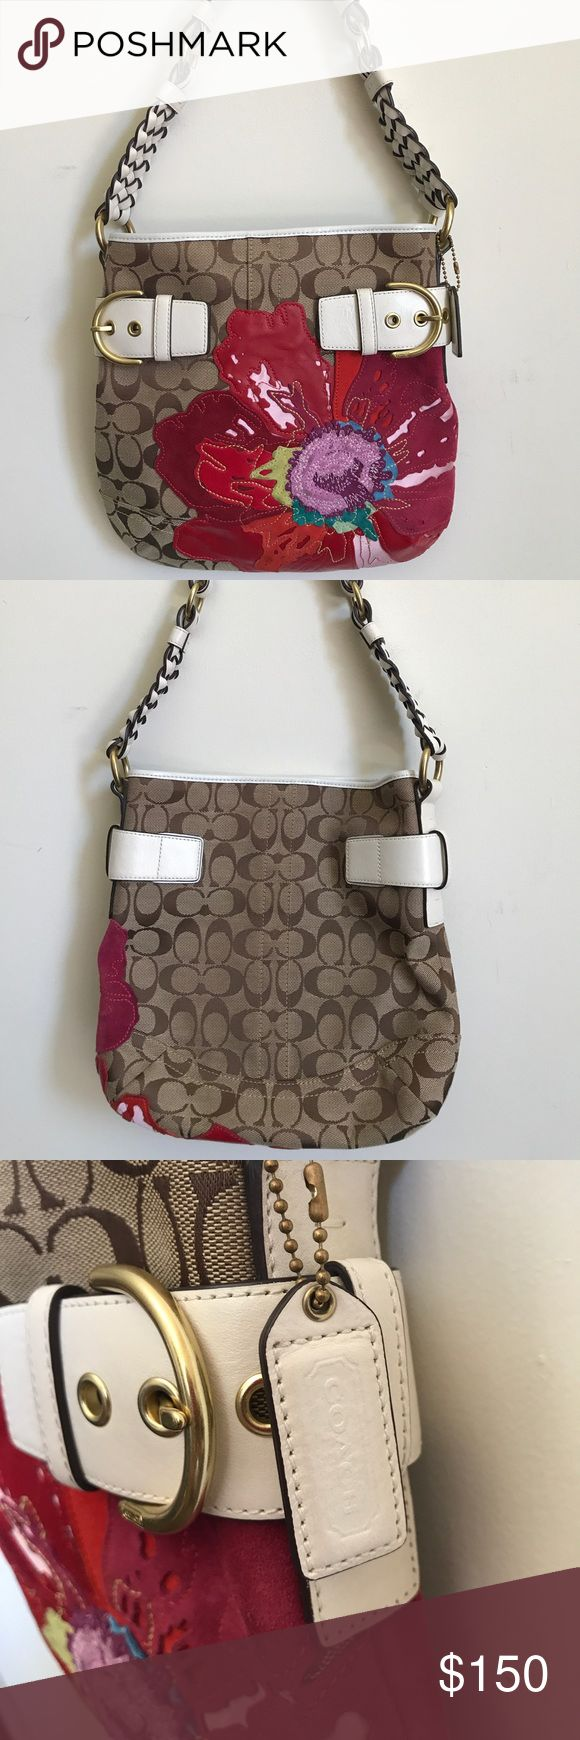 Coach poppy flower appliqué hobo Limited Edition Poppy flower appliqué on brown signature canvas. Gently used. Very good condition. Coach Bags Hobos